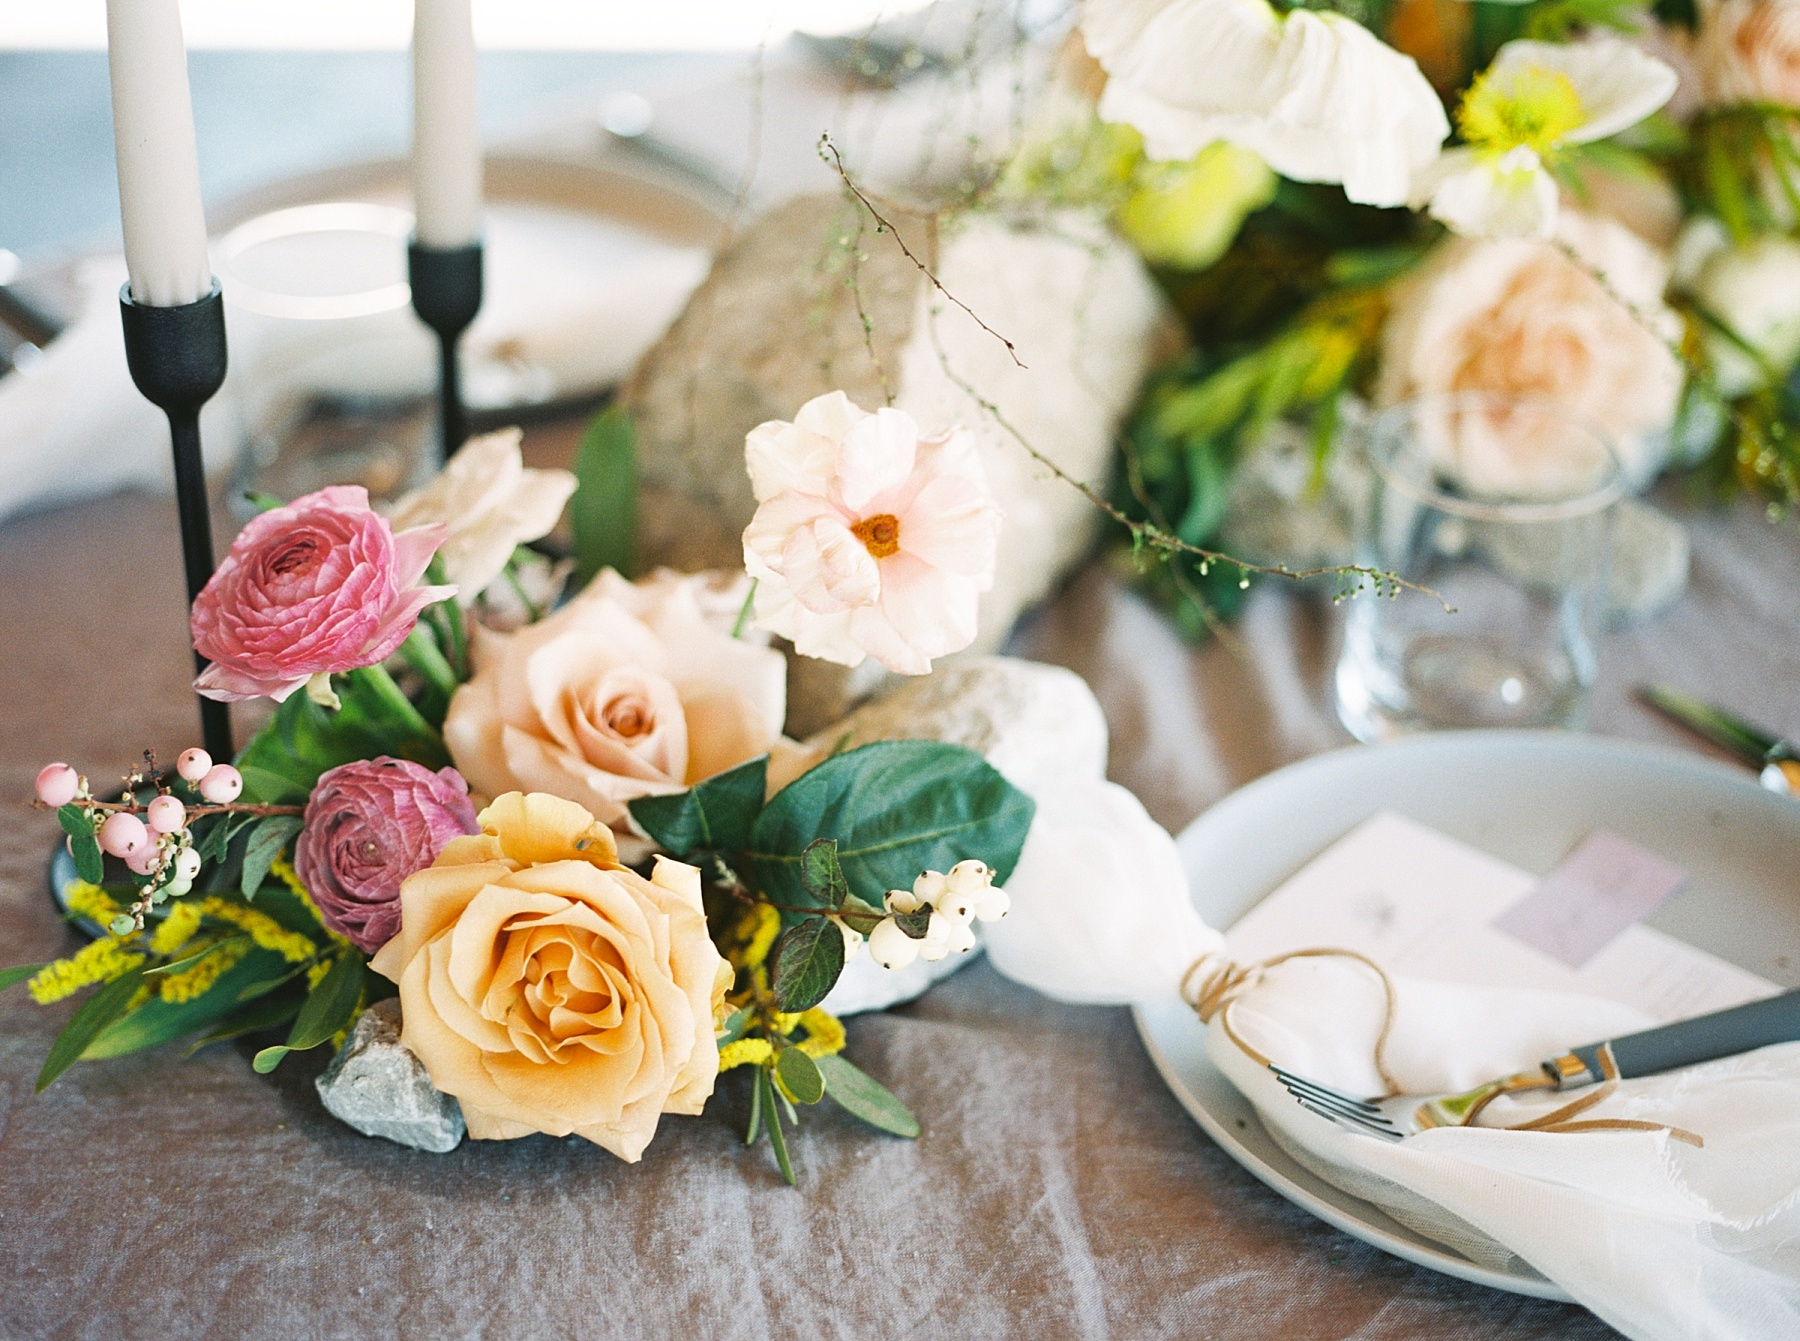 Lakeside Sunset Wedding with Magnificent Abundance of Blooms at Emerson Fields by Kelsi Kliethermes Photography Best Missouri and Maui Wedding Photographer_0005.jpg